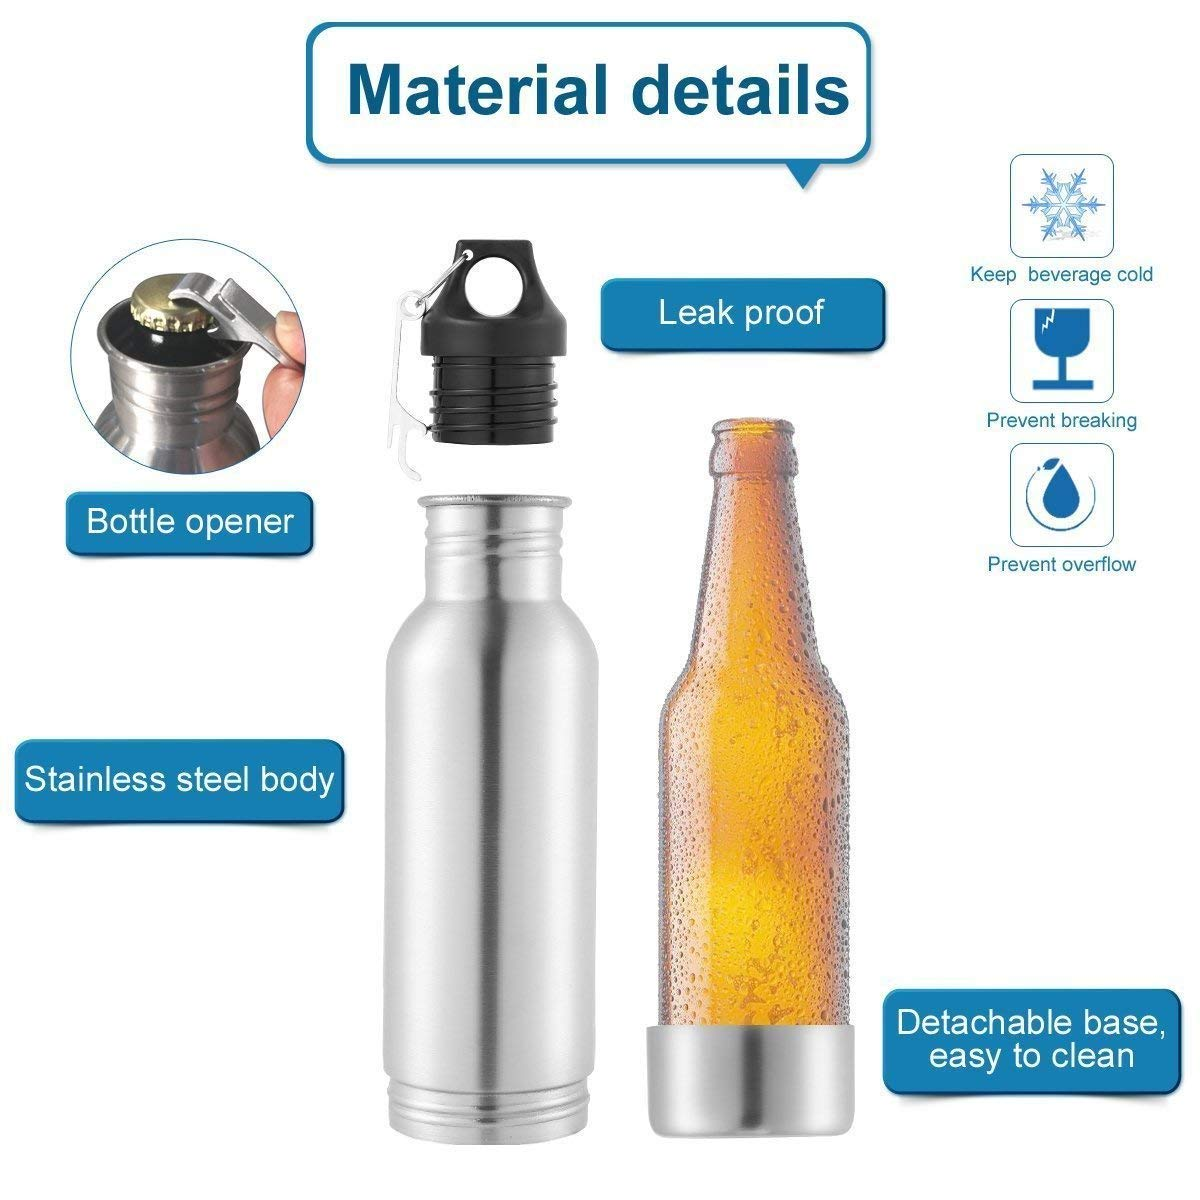 Beer Bottle Insulator, Stainless Steel Beer Bottle Insulator (2 Pack) Keeps Beer Colder With Opener/Beer Bottle Holder For Outdoor or Party … (Silver) by Starimac (Image #3)